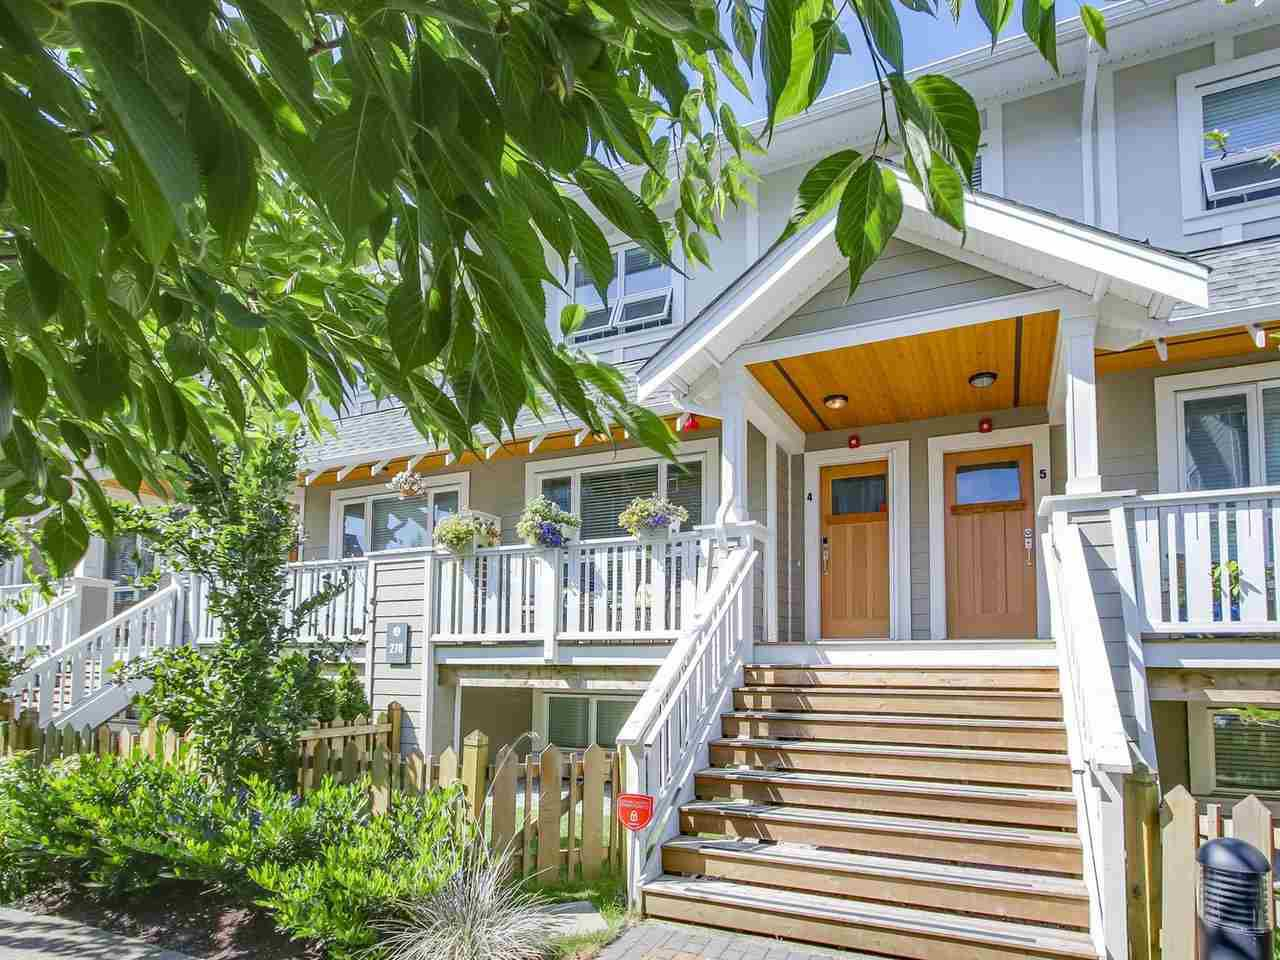 """Main Photo: 4 278 CAMATA Street in New Westminster: Queensborough Townhouse for sale in """"Canoe"""" : MLS®# R2193929"""